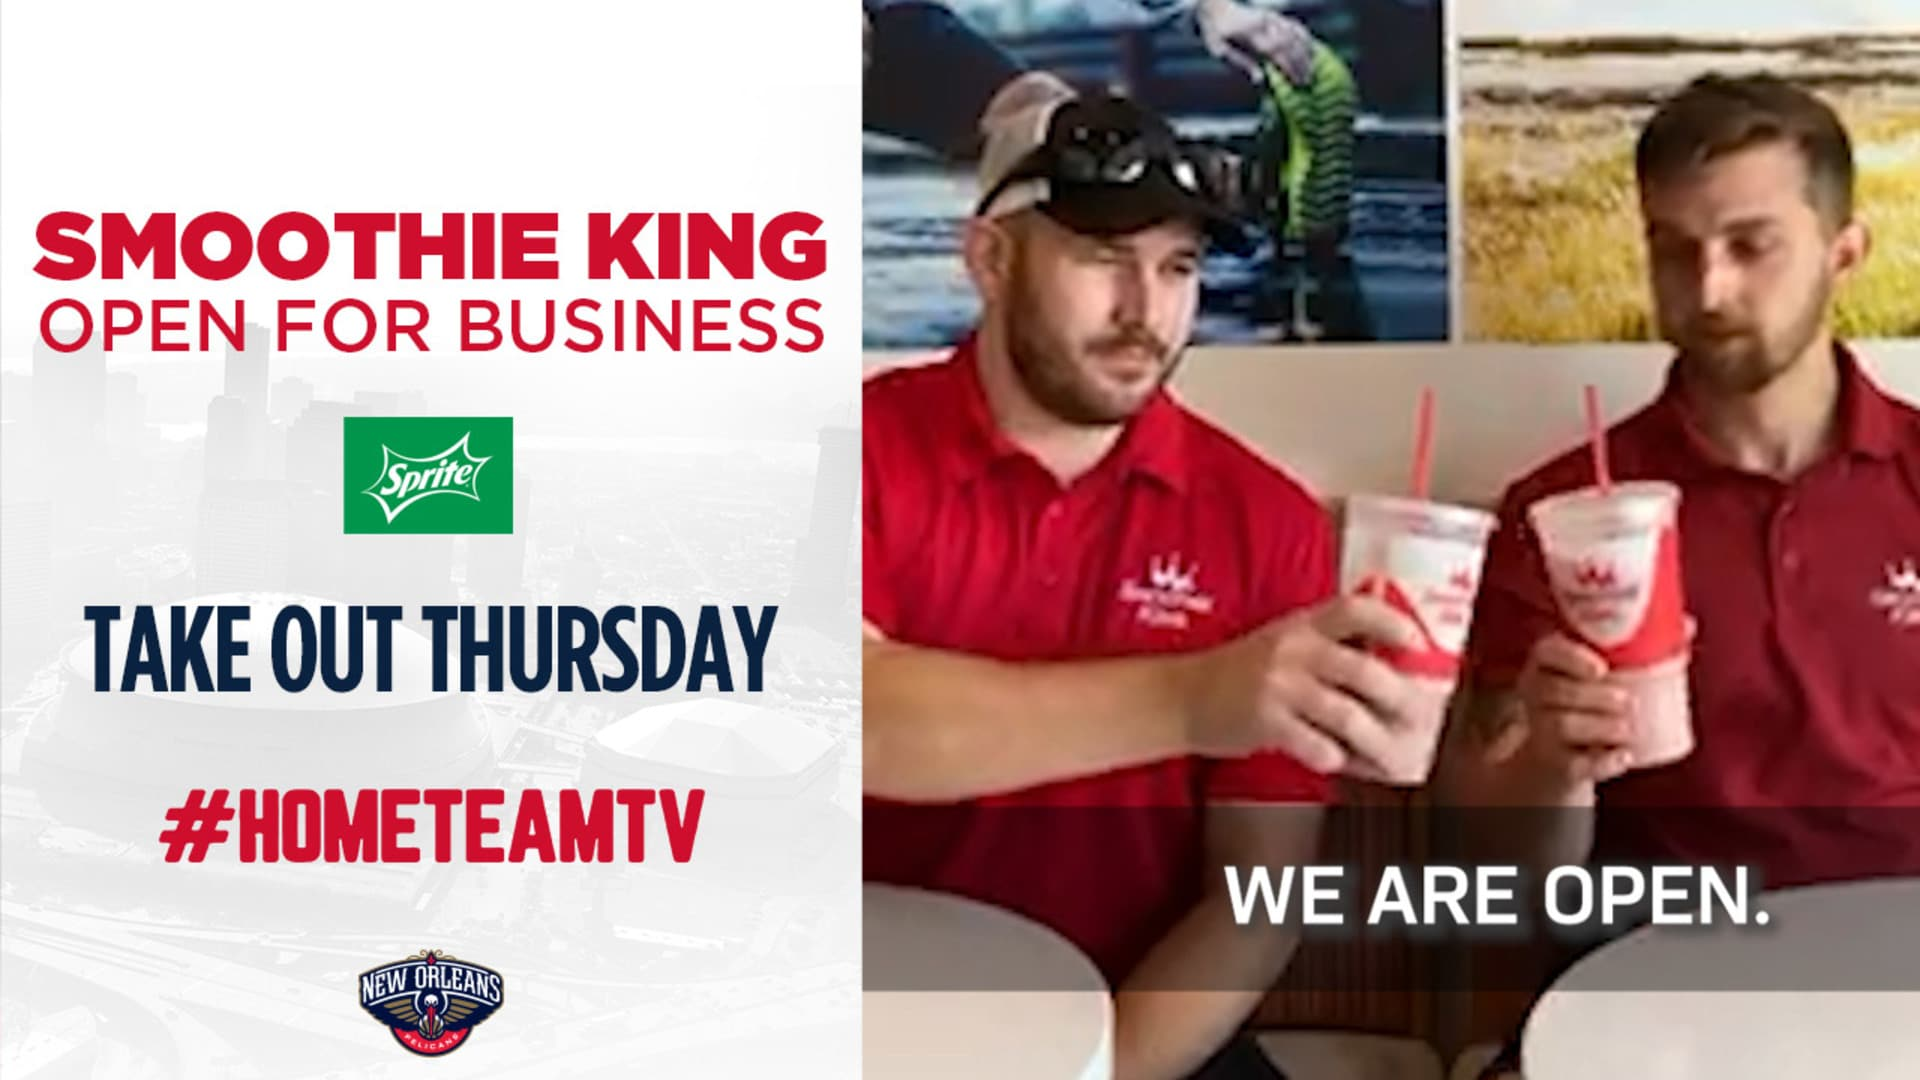 HomeTeamTV: Smoothie King options on Takeout Thursday, 5/28/20